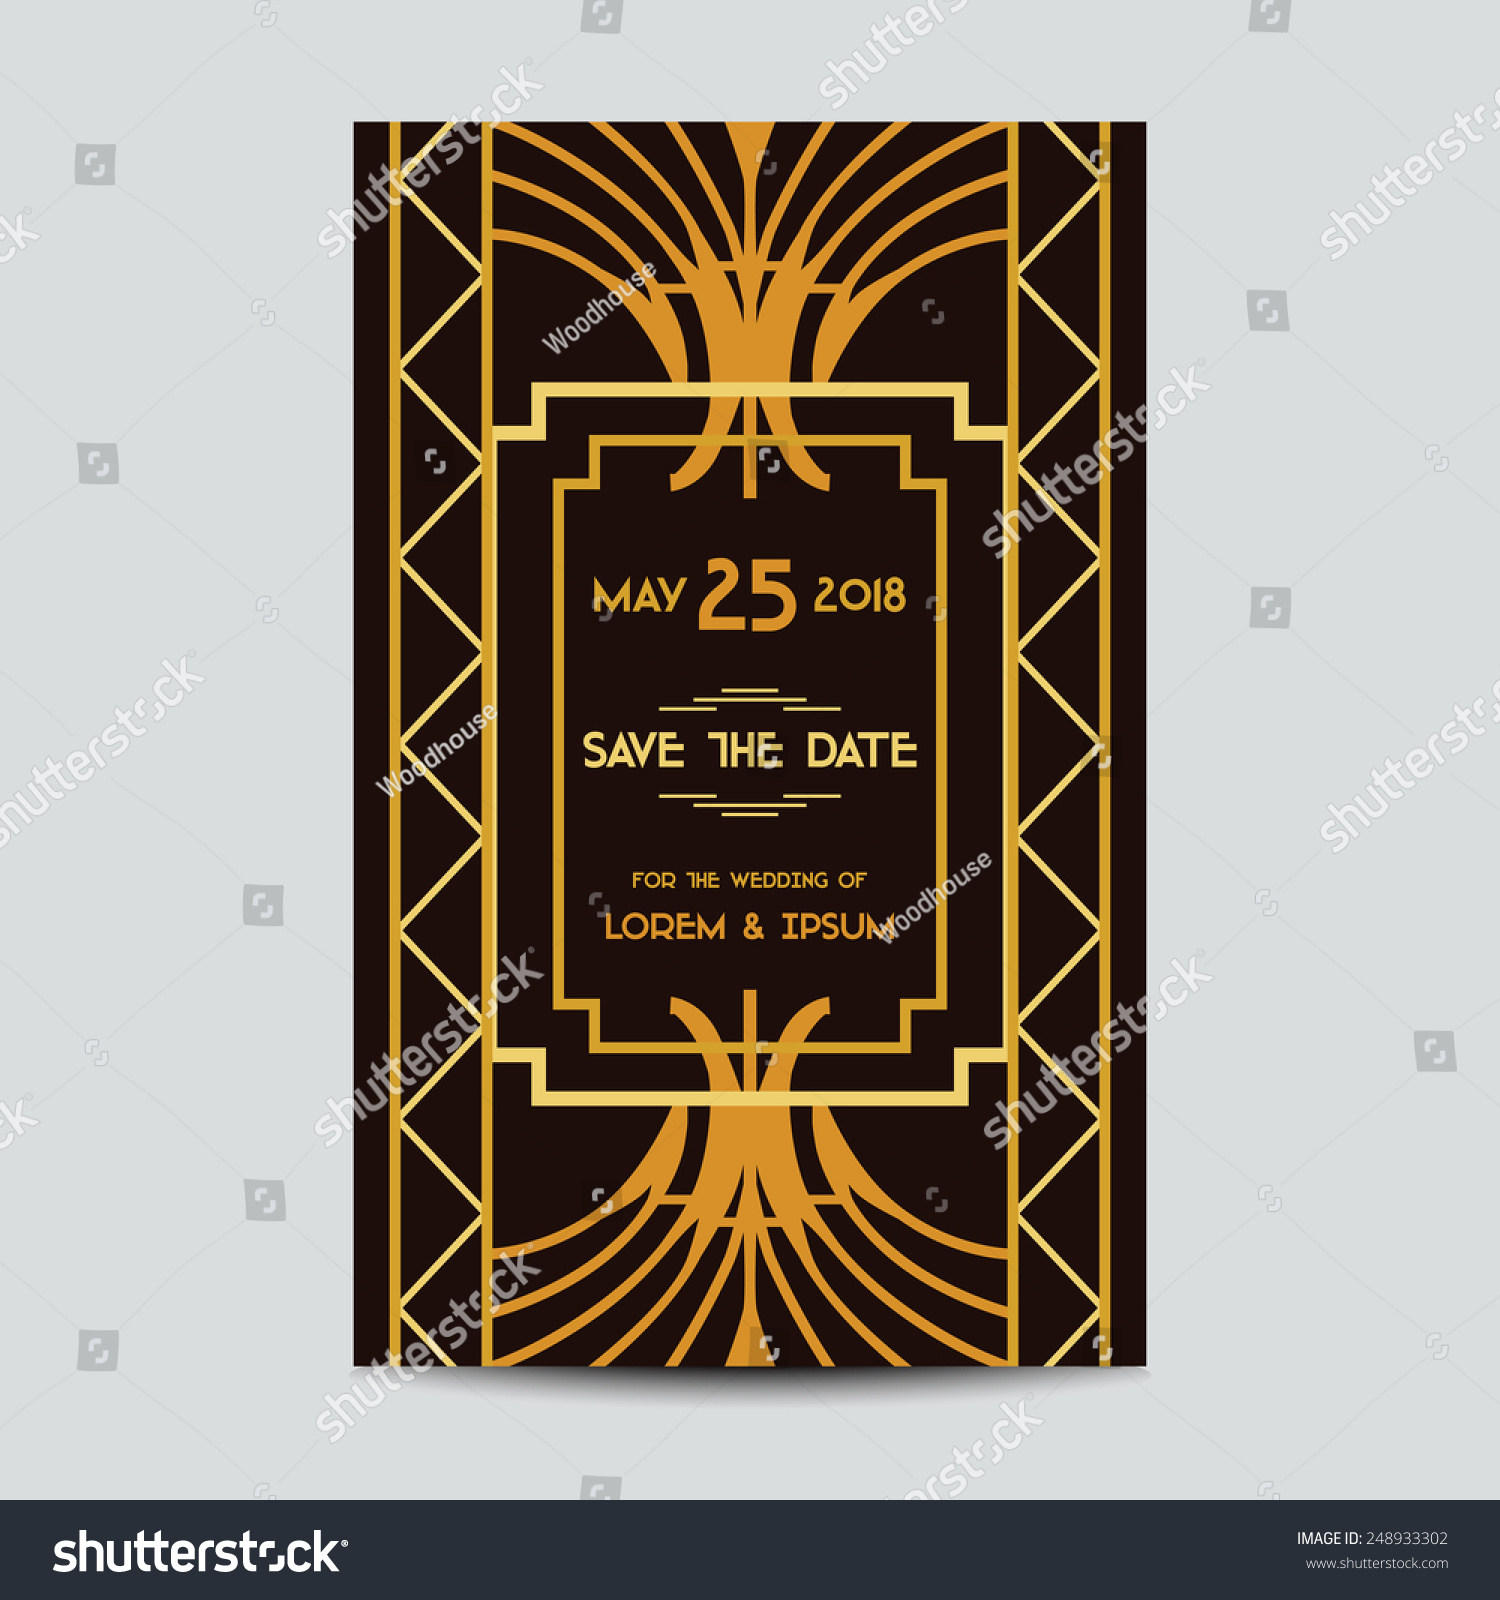 Save Date Wedding Invitation Card Art Stock Vector Royalty Free